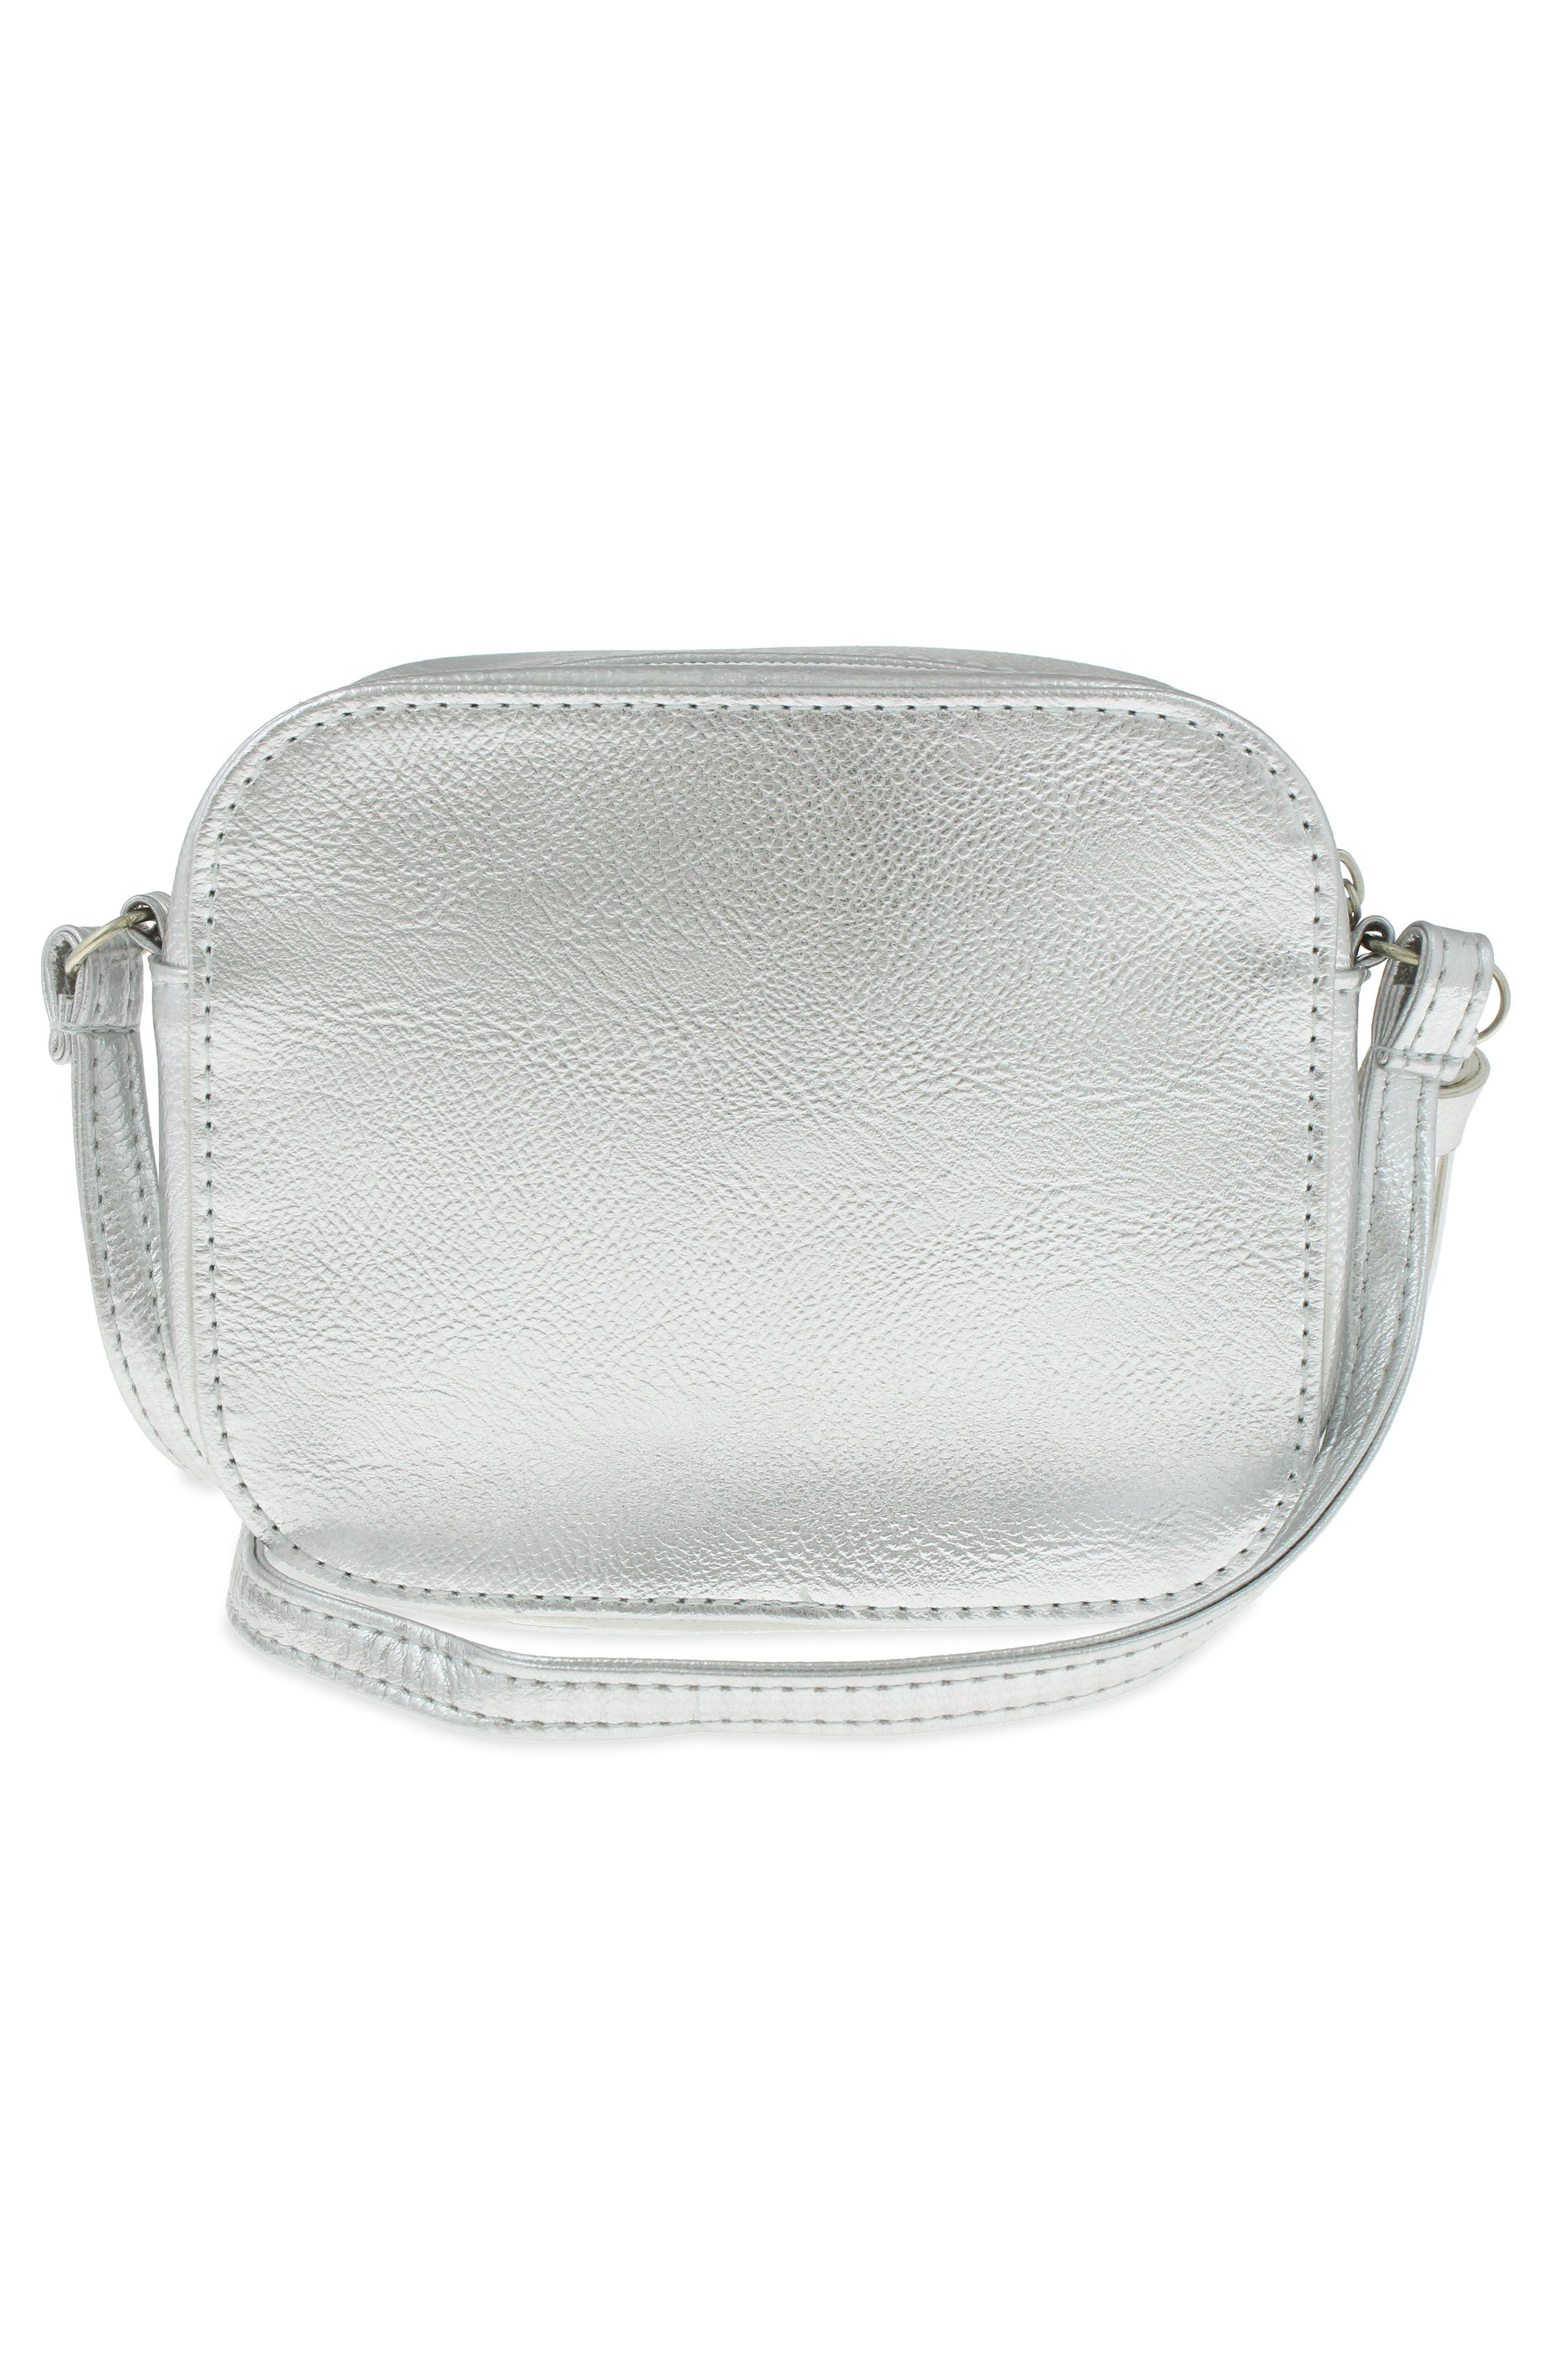 Peace Sign Faux Leather Crossbody Bag,                             Alternate thumbnail 4, color,                             Silver Combo